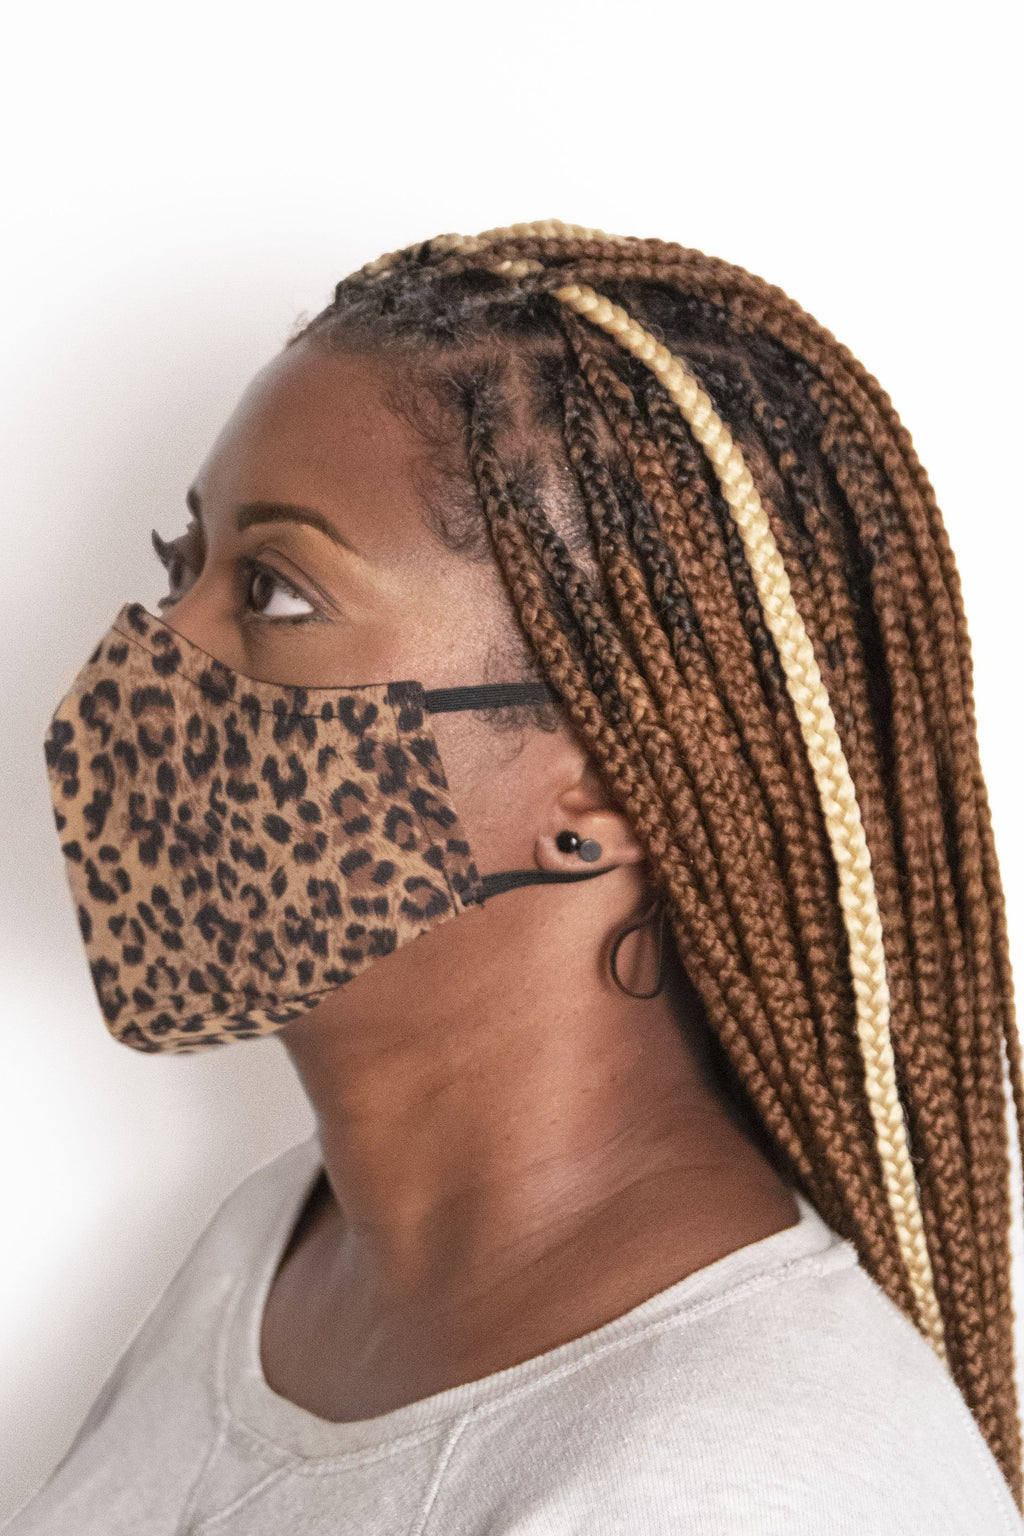 Cheetah Print Secure-Fit Face Mask - pacorogiene